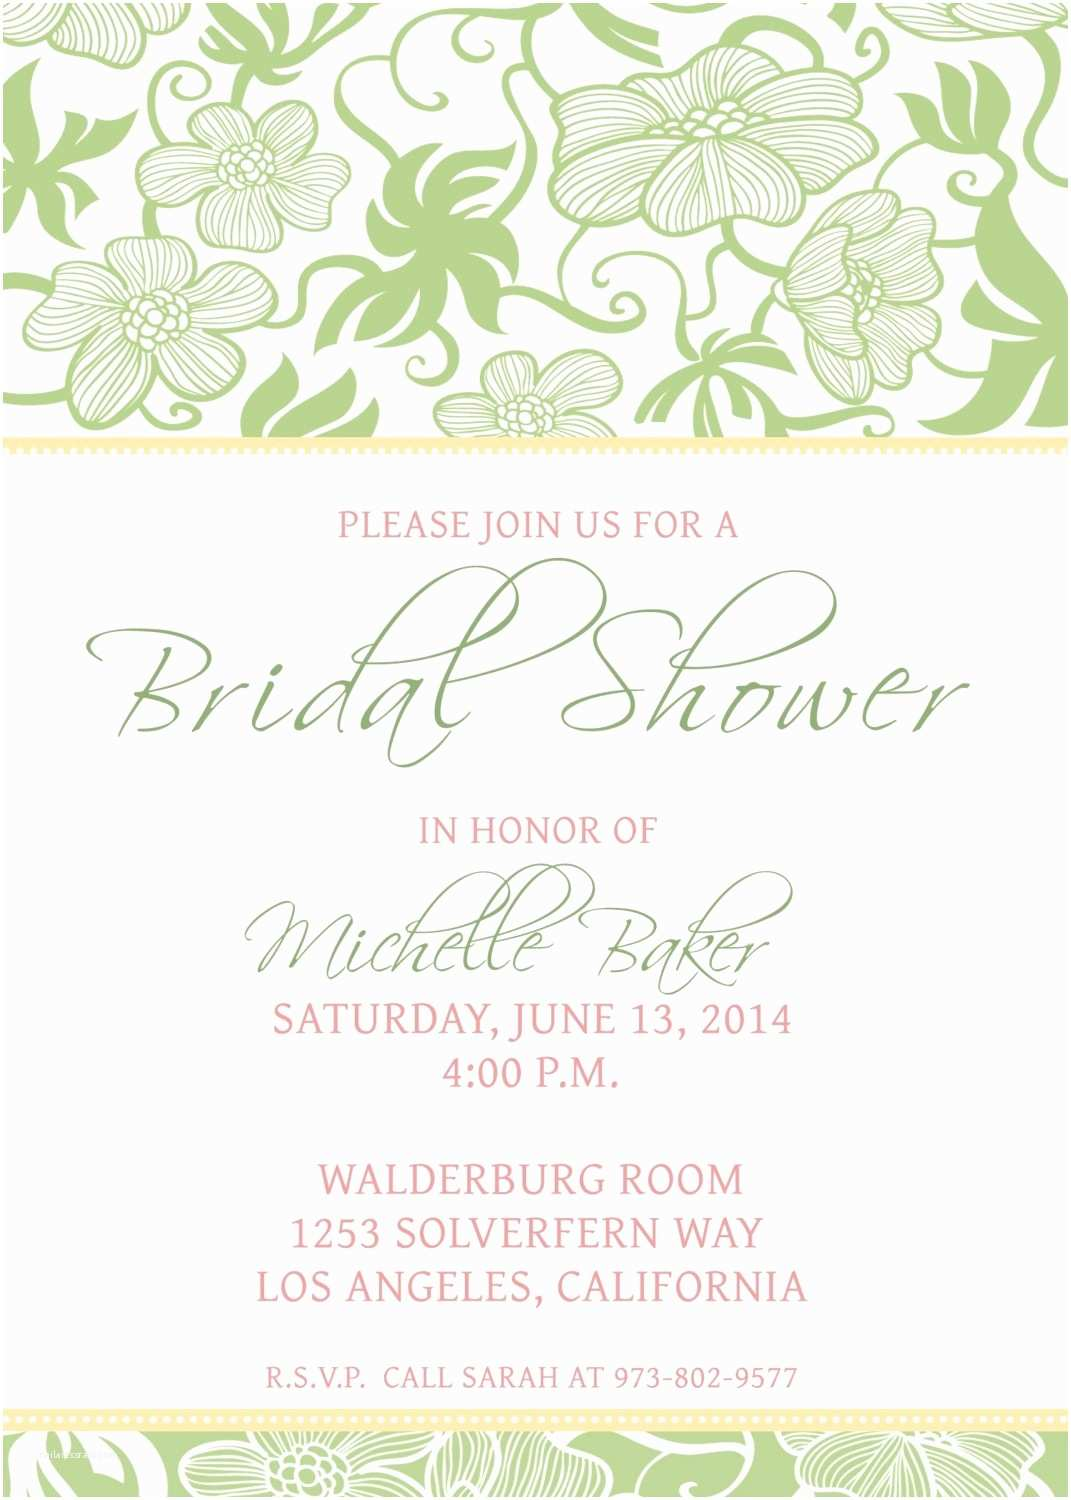 Make Your Own Wedding Shower Invitations Free How to Make Your Own Wedding Invitations Template